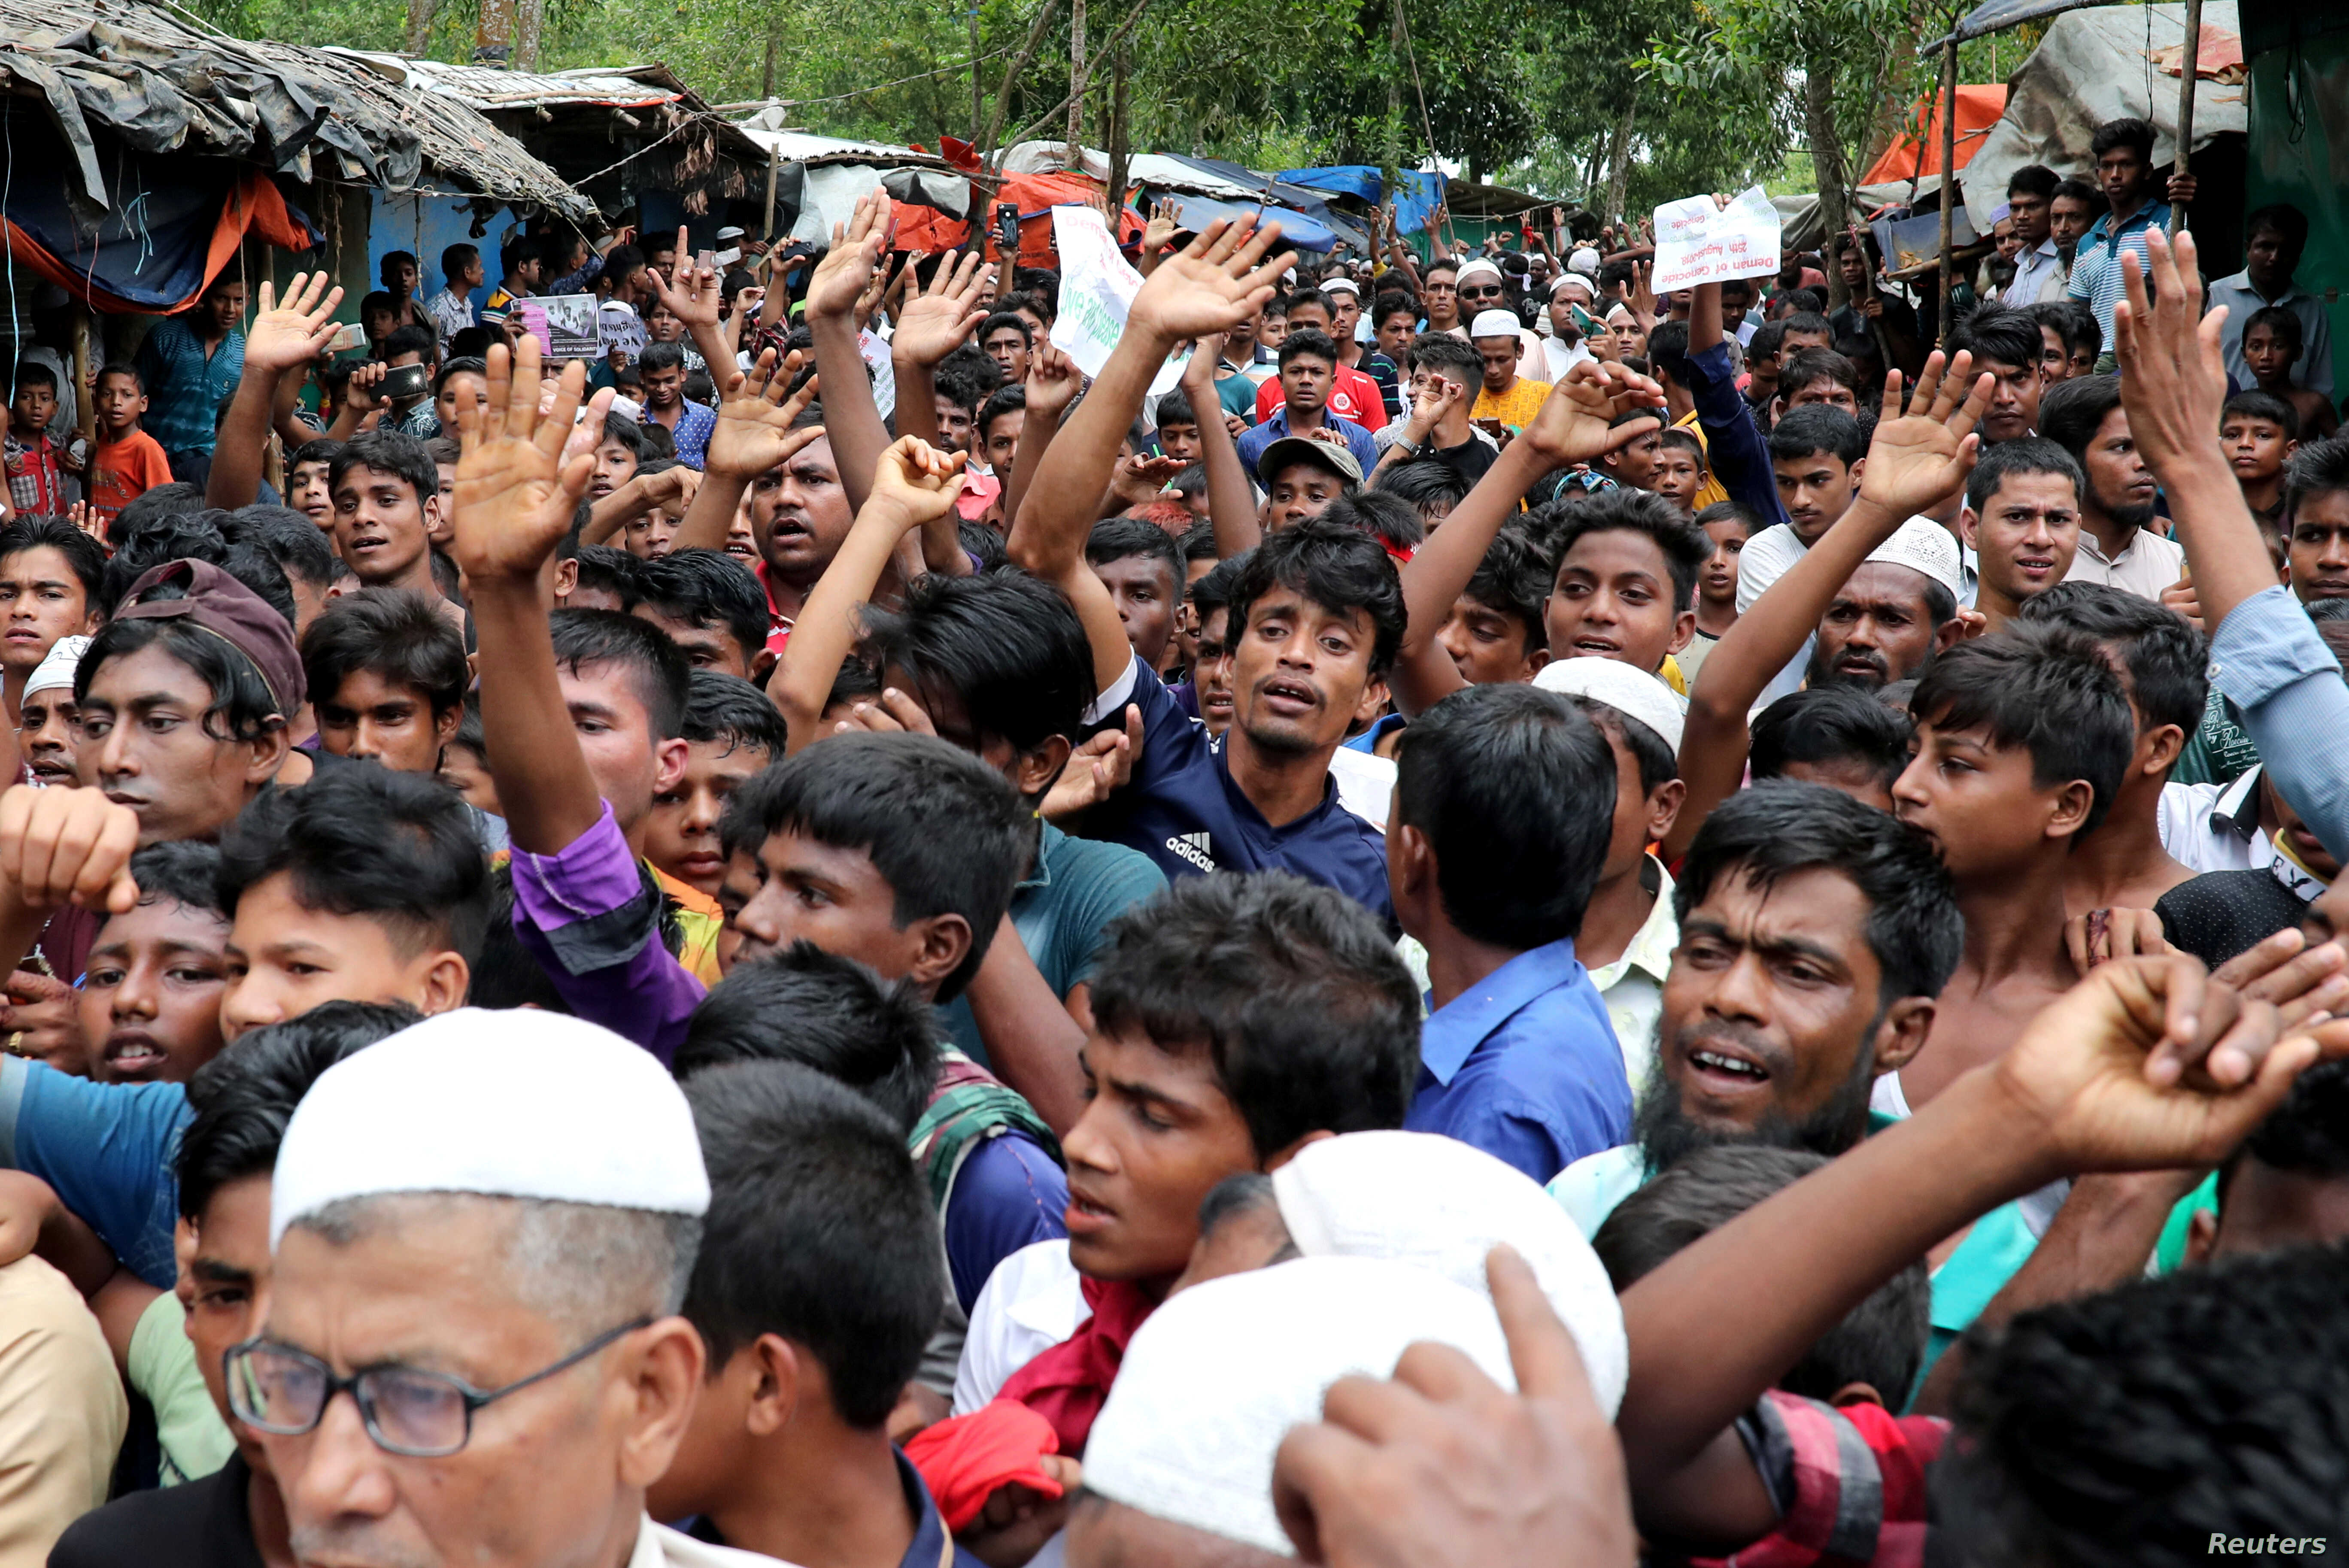 Rohingya refugees shout slogans as they take part in a protest at the Kutupalong refugee camp to mark the one-year anniversary of their exodus, in Cox's Bazar, Bangladesh, Aug. 25, 2018.